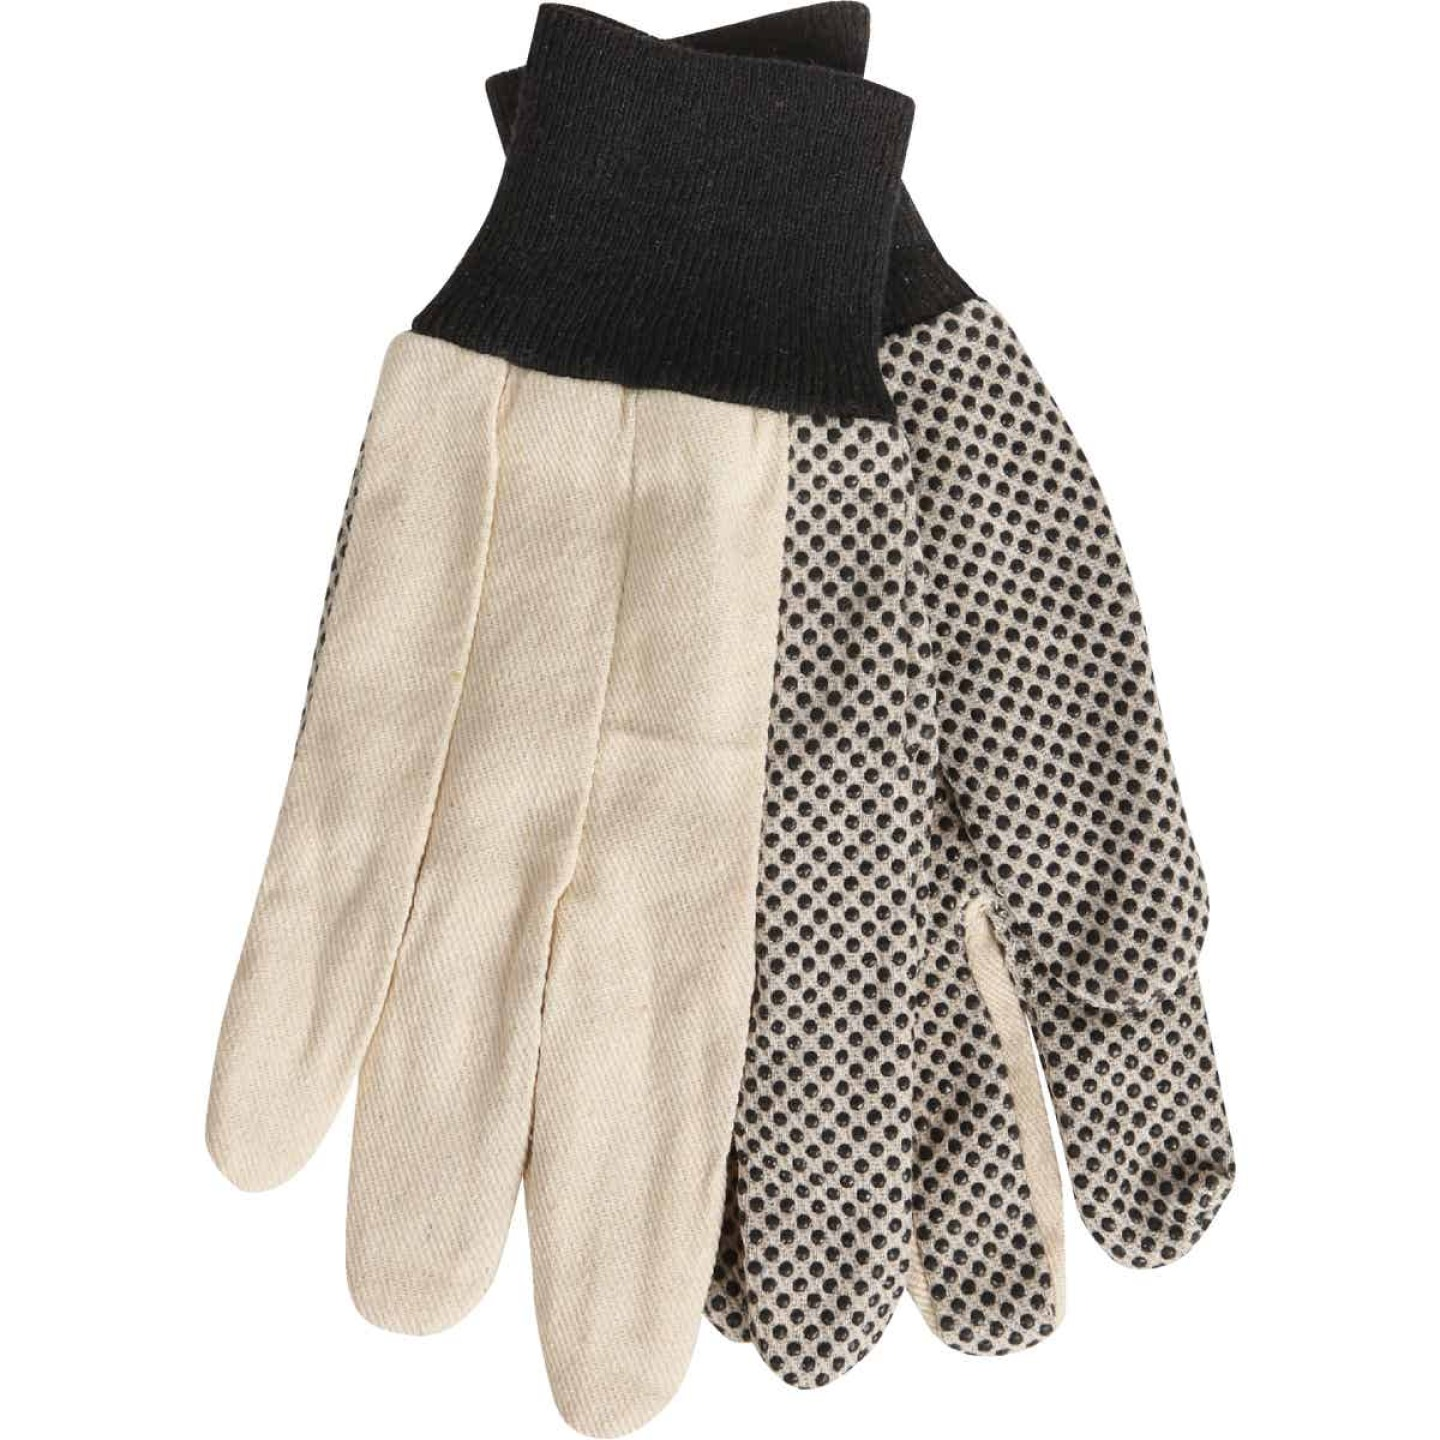 Do it Men's Large PVC Grip Cotton Canvas Work Glove Image 1